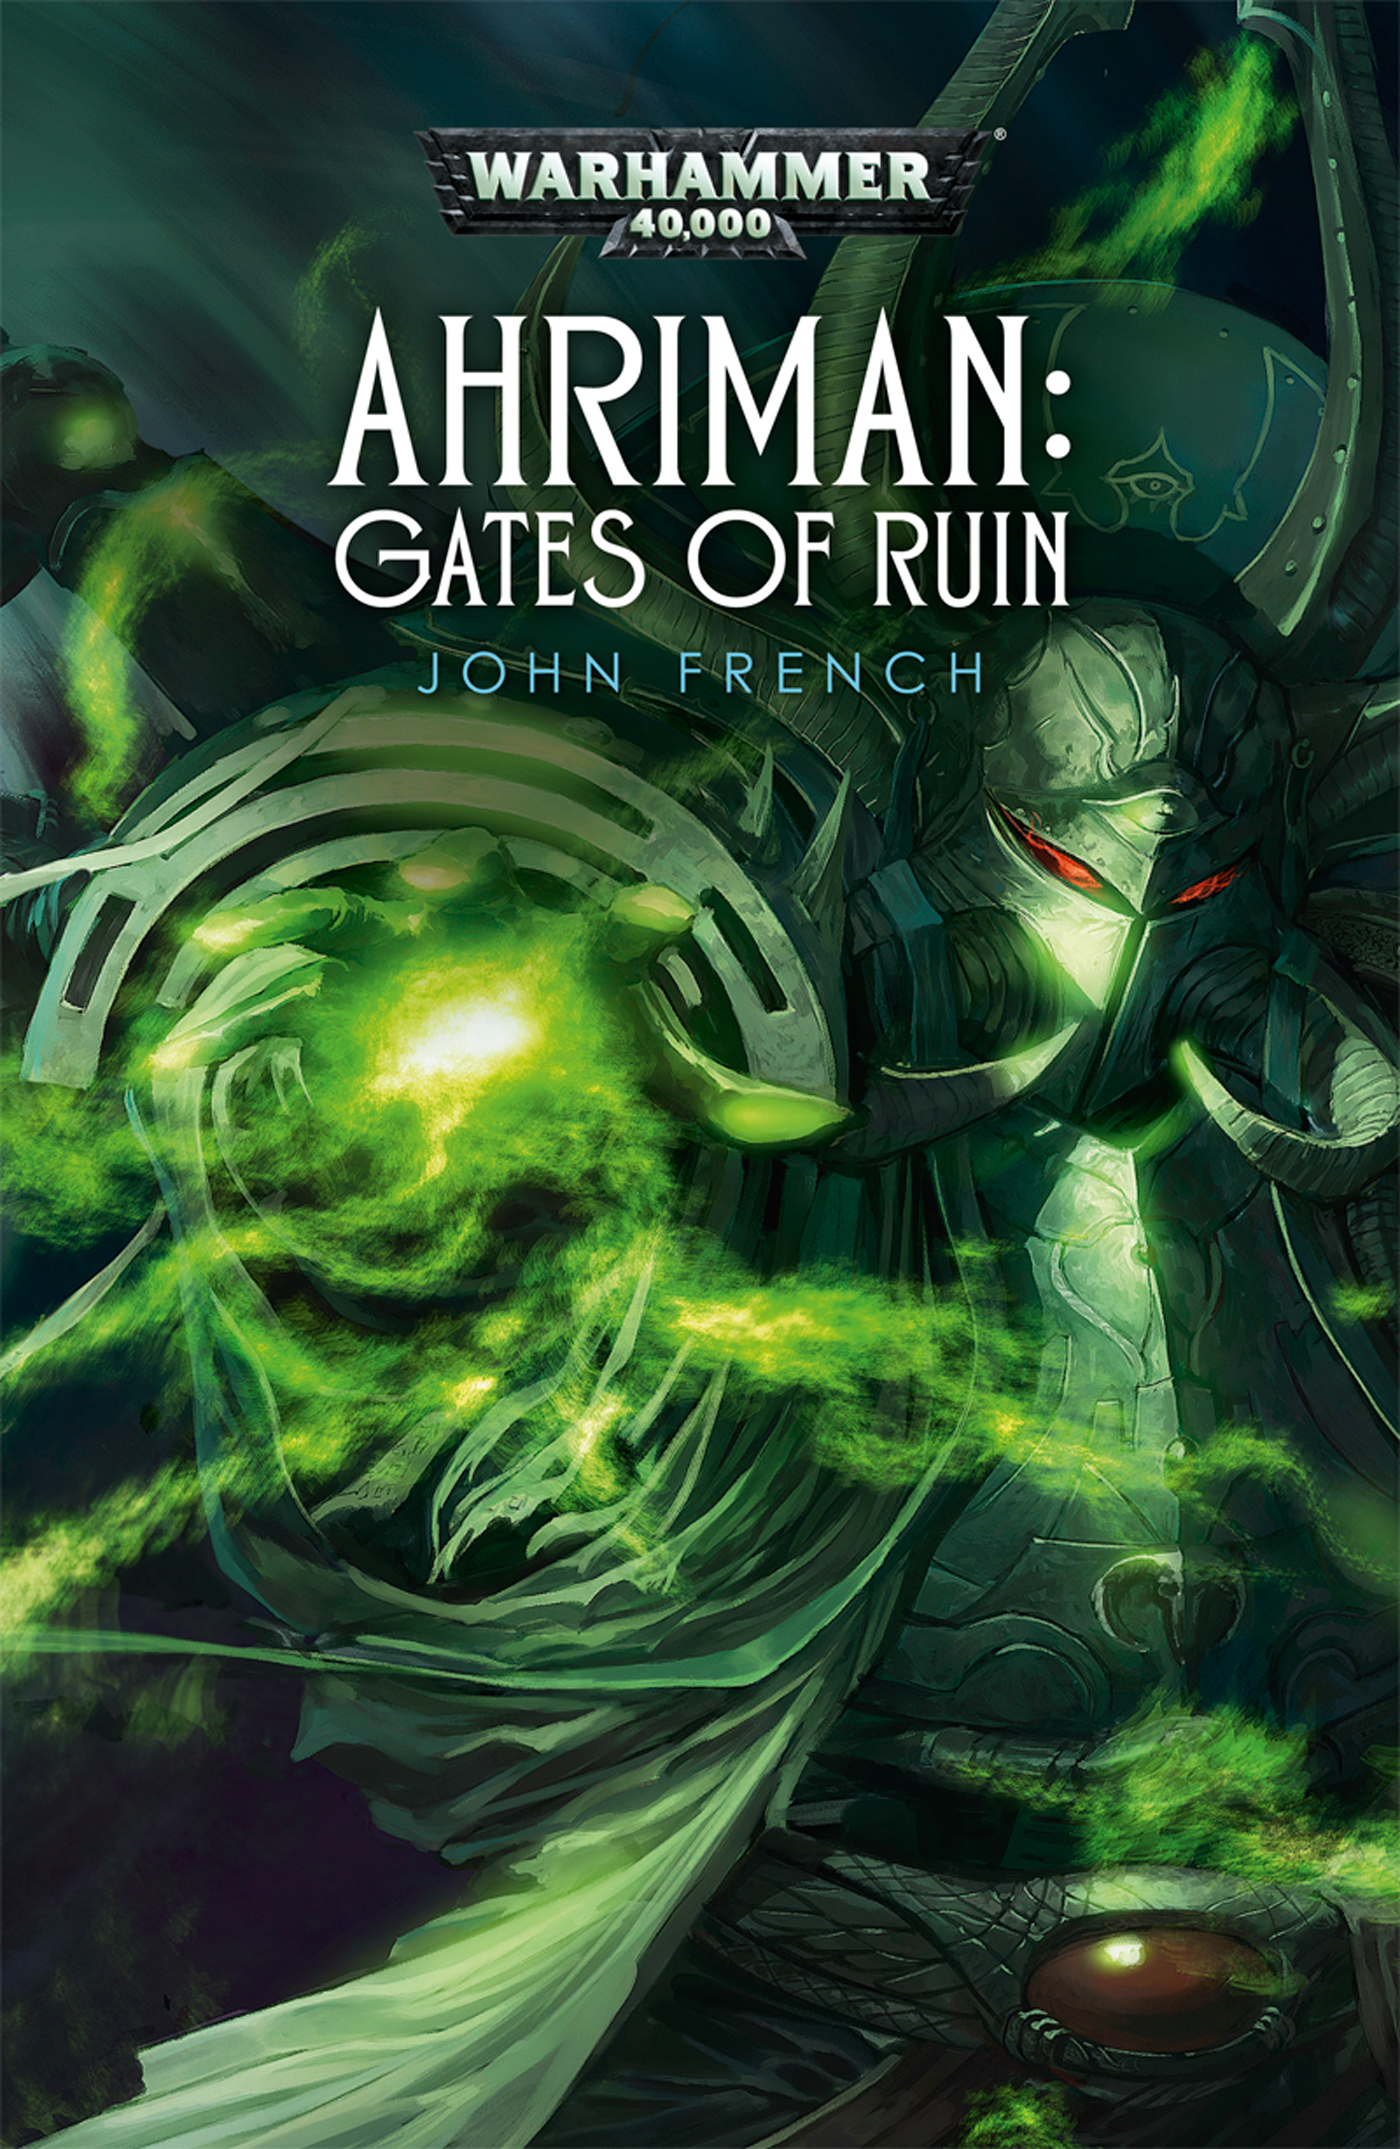 Ahriman: Gates of Ruin by John French